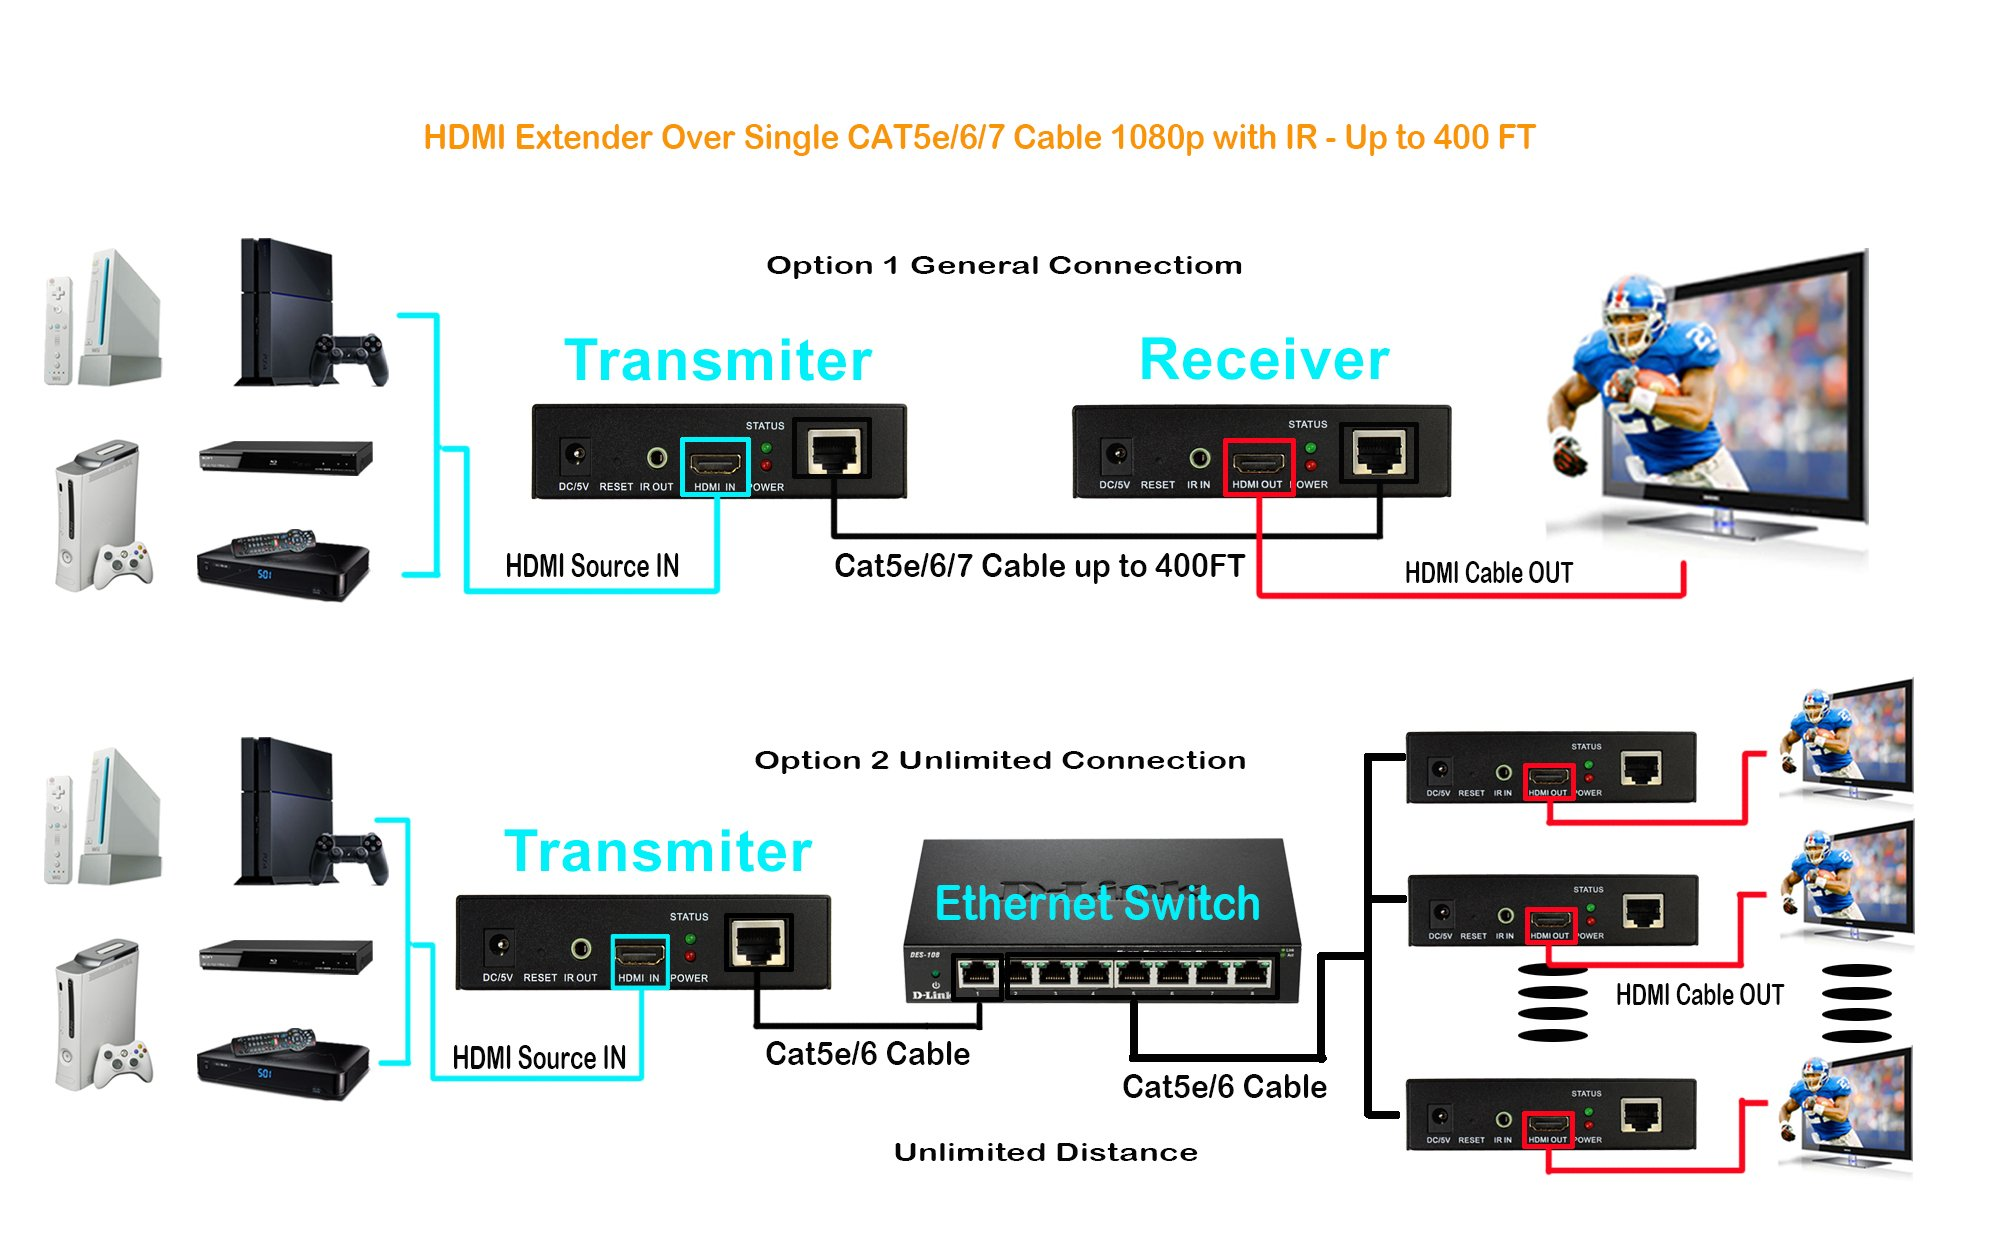 J-Tech Digital ProAV Hdmi Extender Over TCP/IP Ethernet/over Single Cat5e/cat6 Cable 1080p with IR Remote - Up to 400 Ft by J-Tech Digital (Image #5)